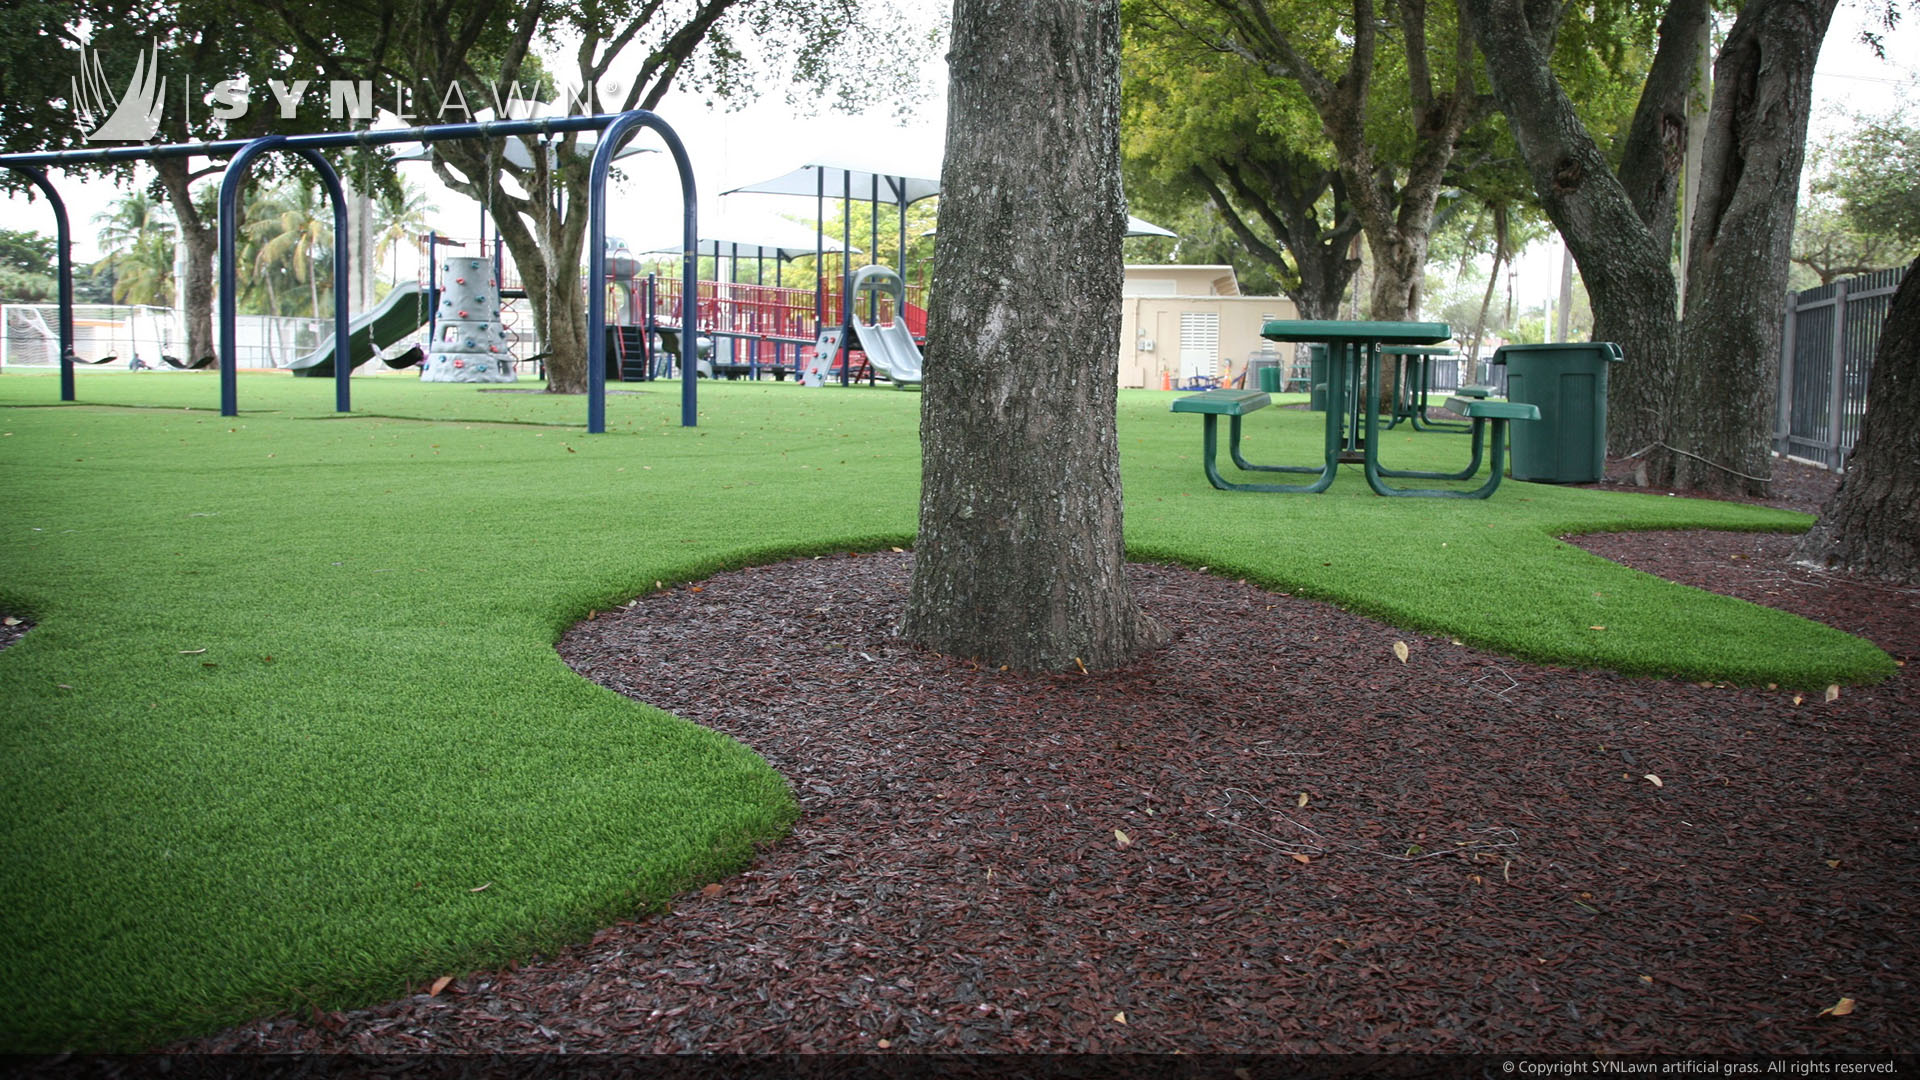 artificial grass at public park playground